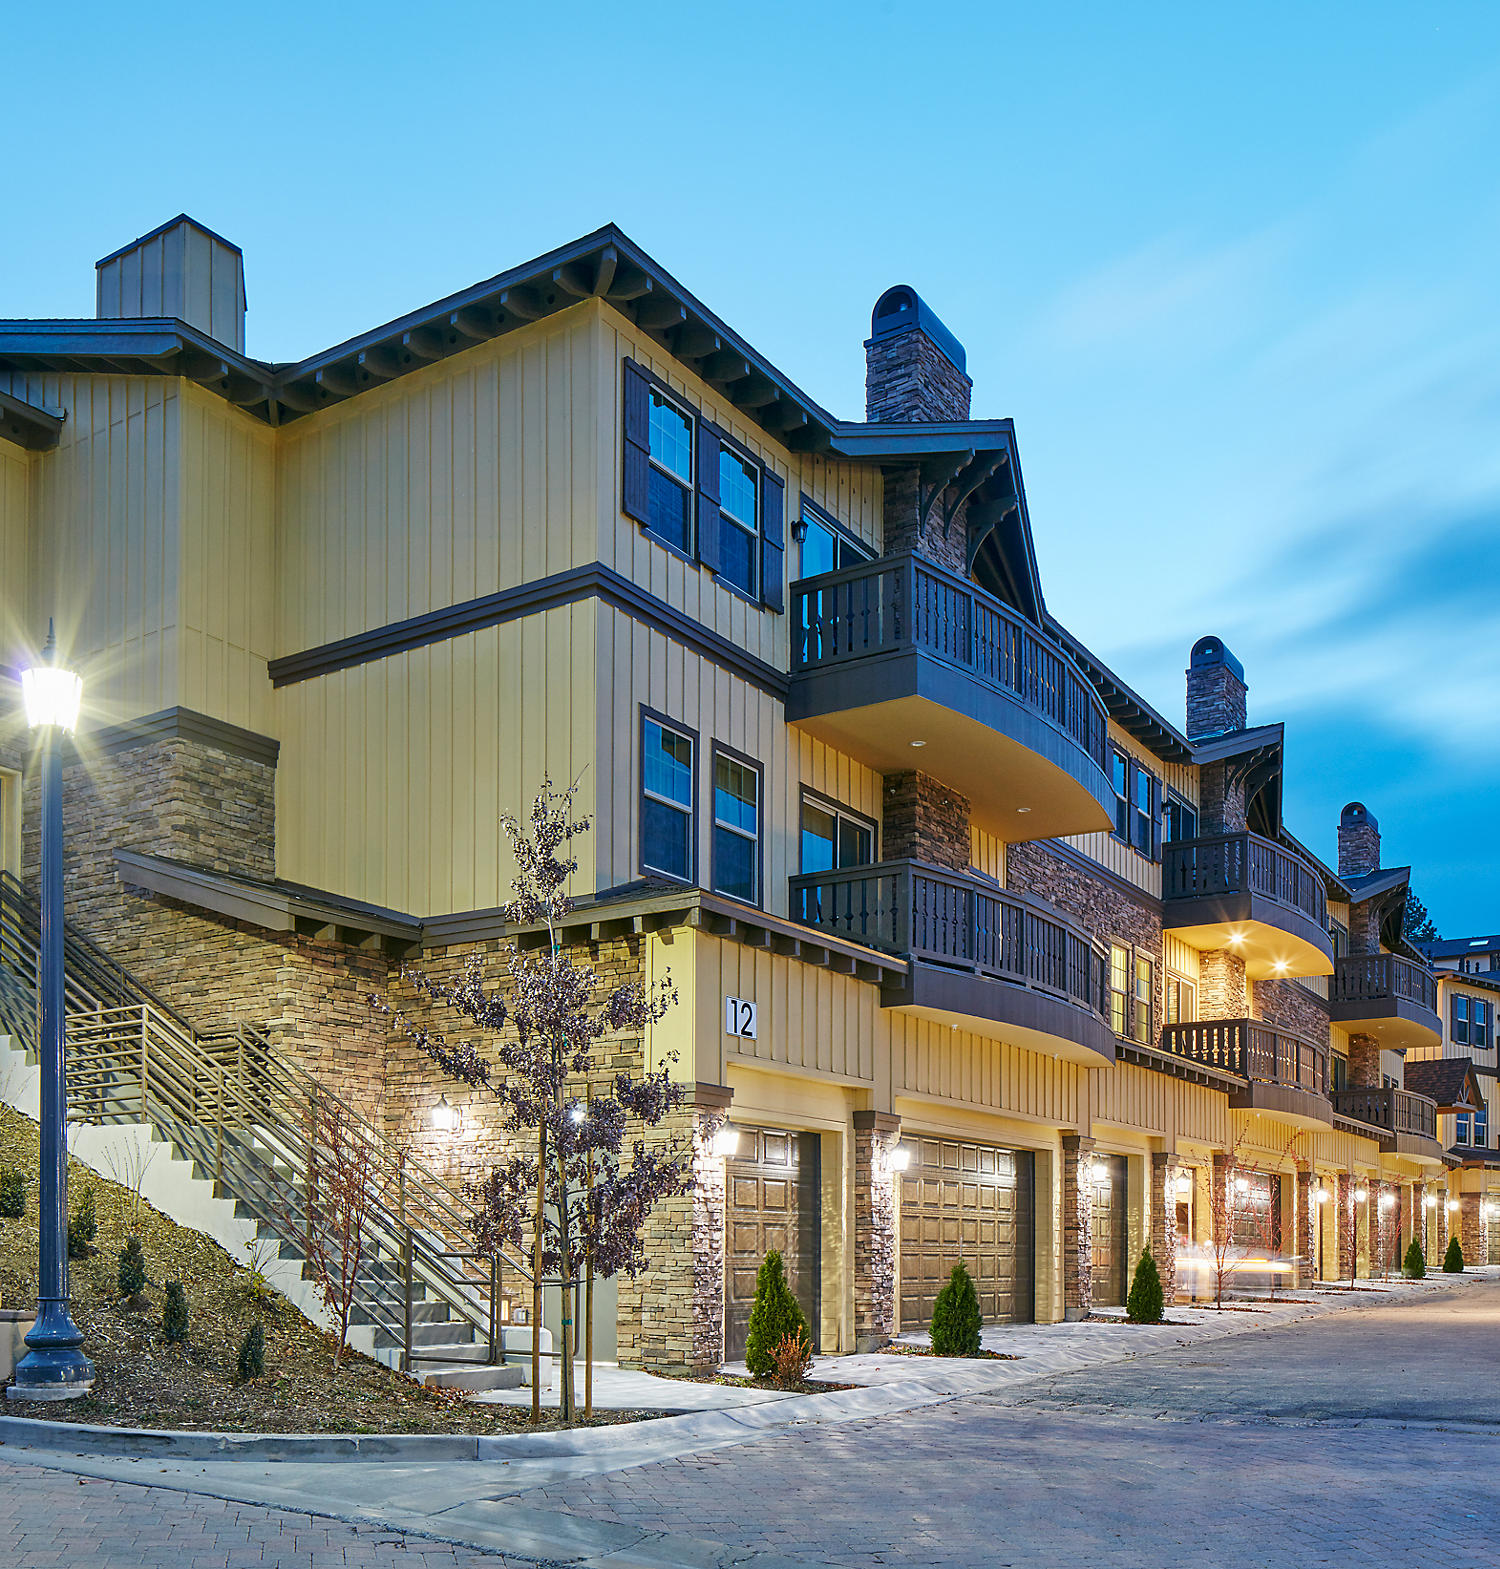 The Club at Big Bear Village